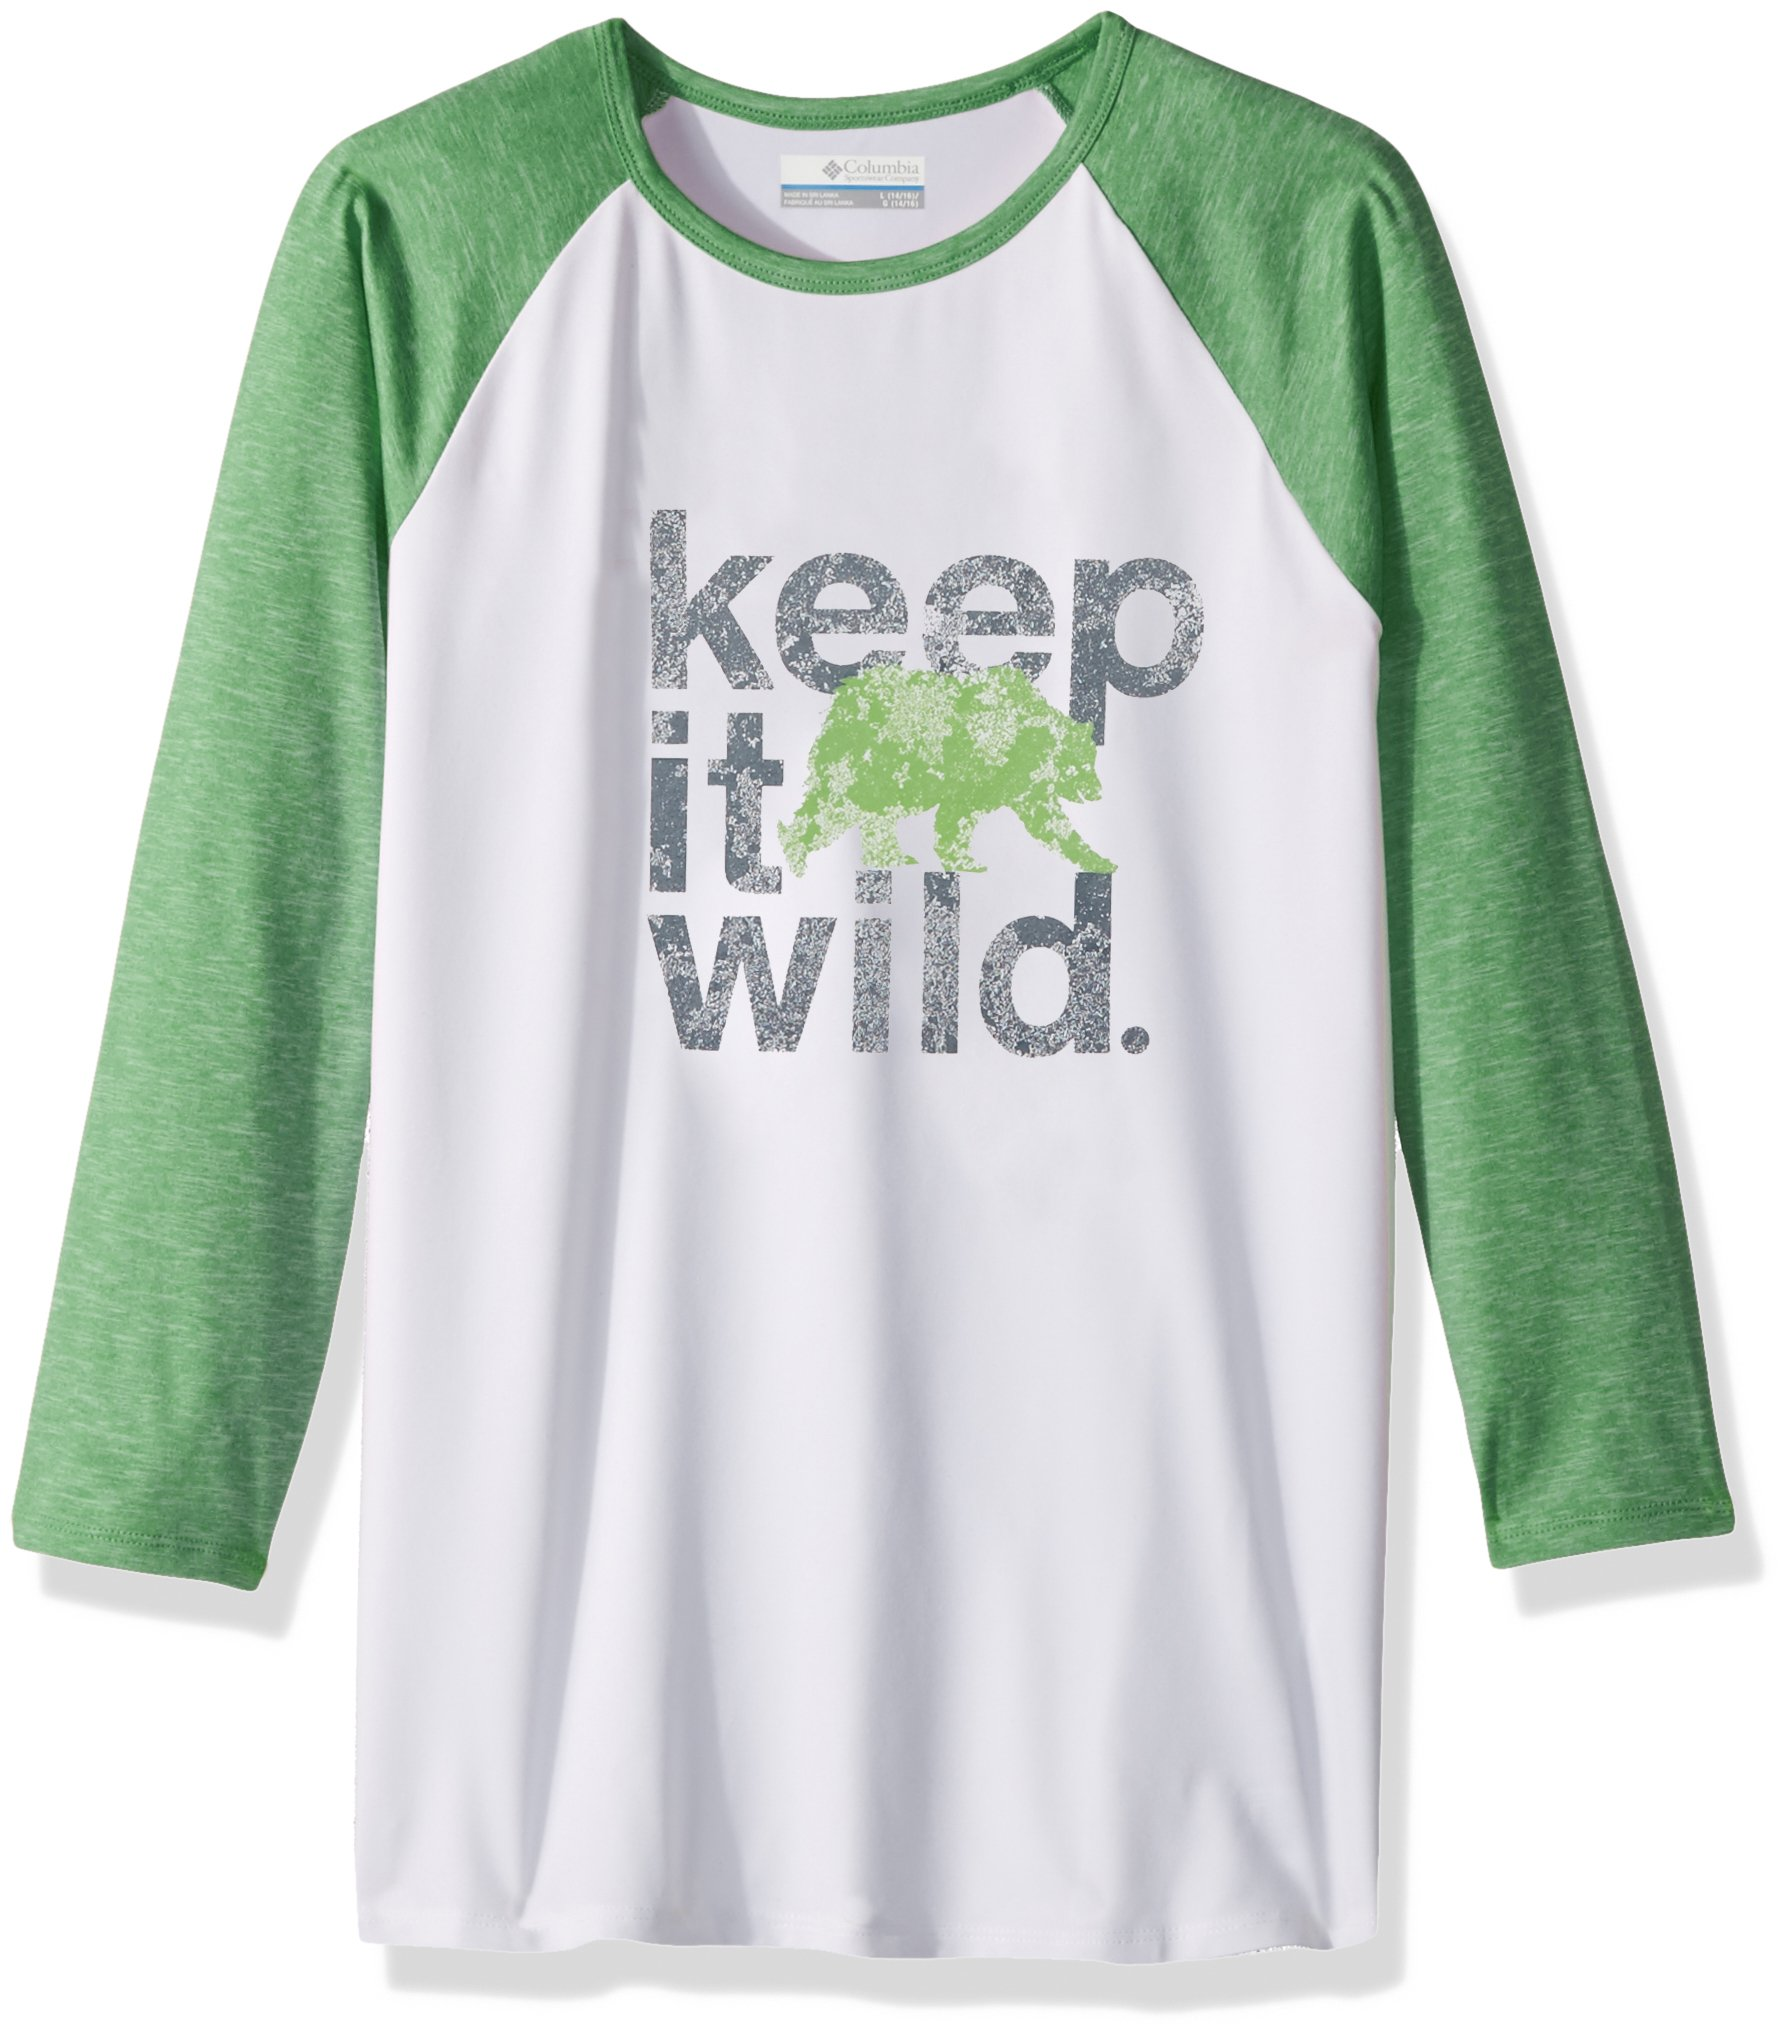 Columbia Boys Outdoor Elements 3/4 Sleeve Shirt, Fuse Green Wild Graphic, X-Small by Columbia